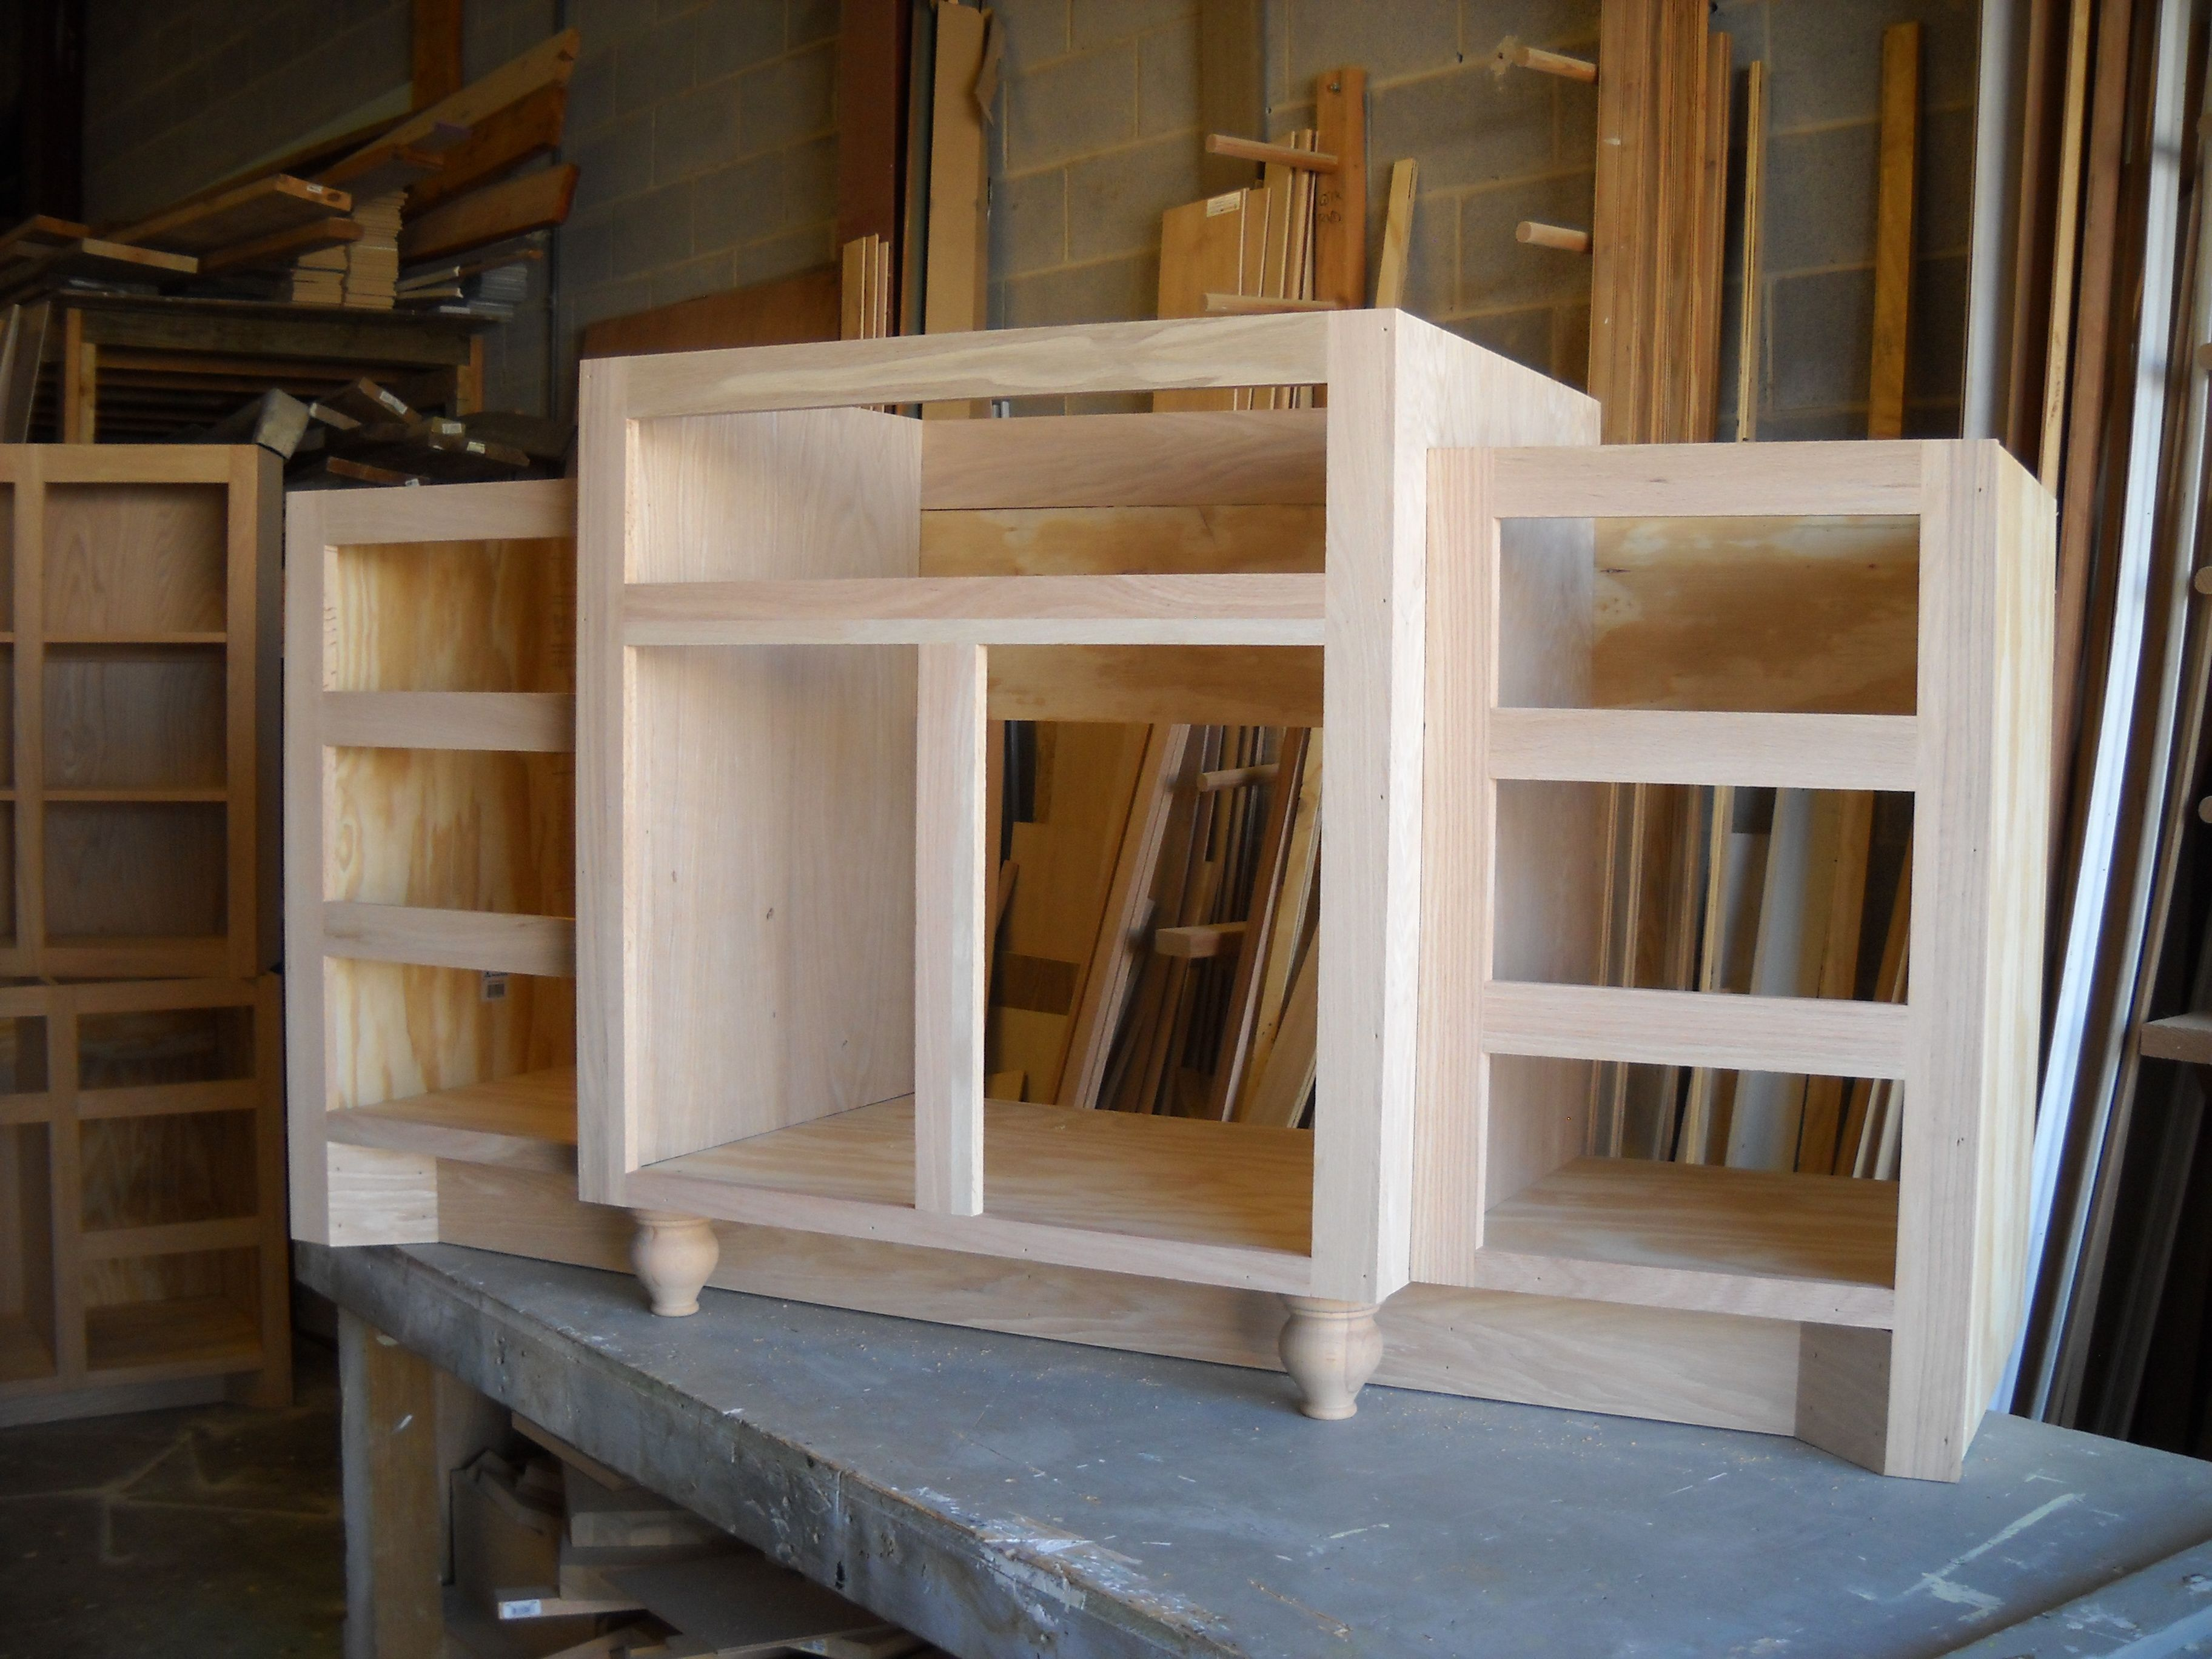 Marvelous Woodworking Building A Bathroom Vanity From Scratch Plans Pdf